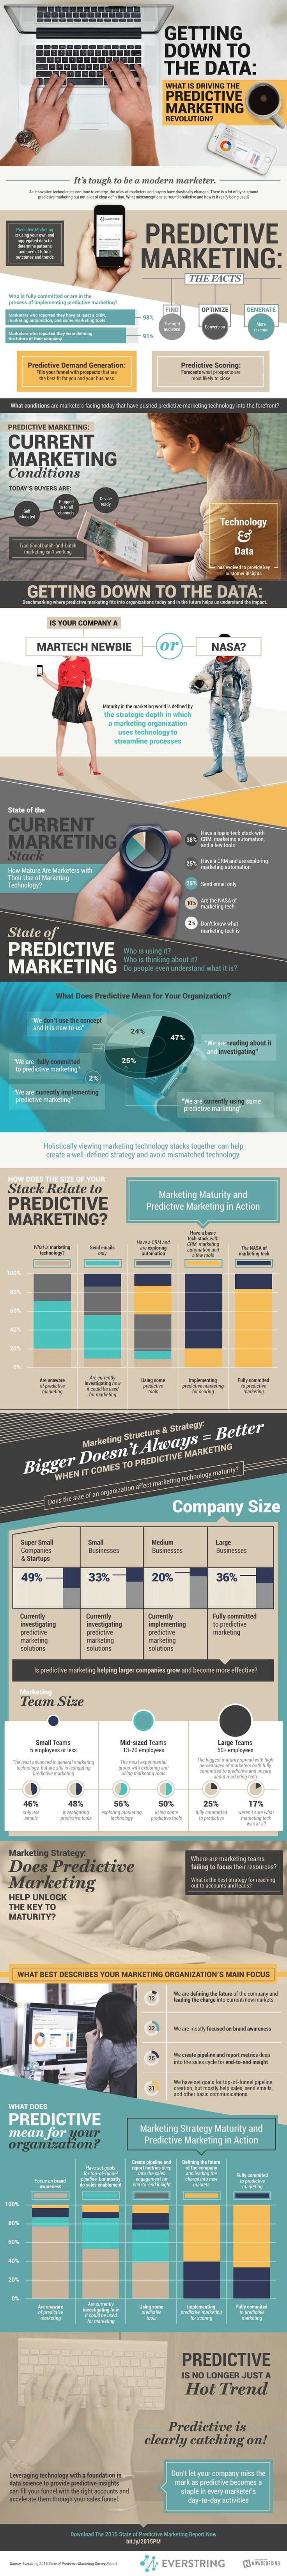 The 2015 State Of Predictive Marketing Survey Report [Report/Infographic] - CMO.com